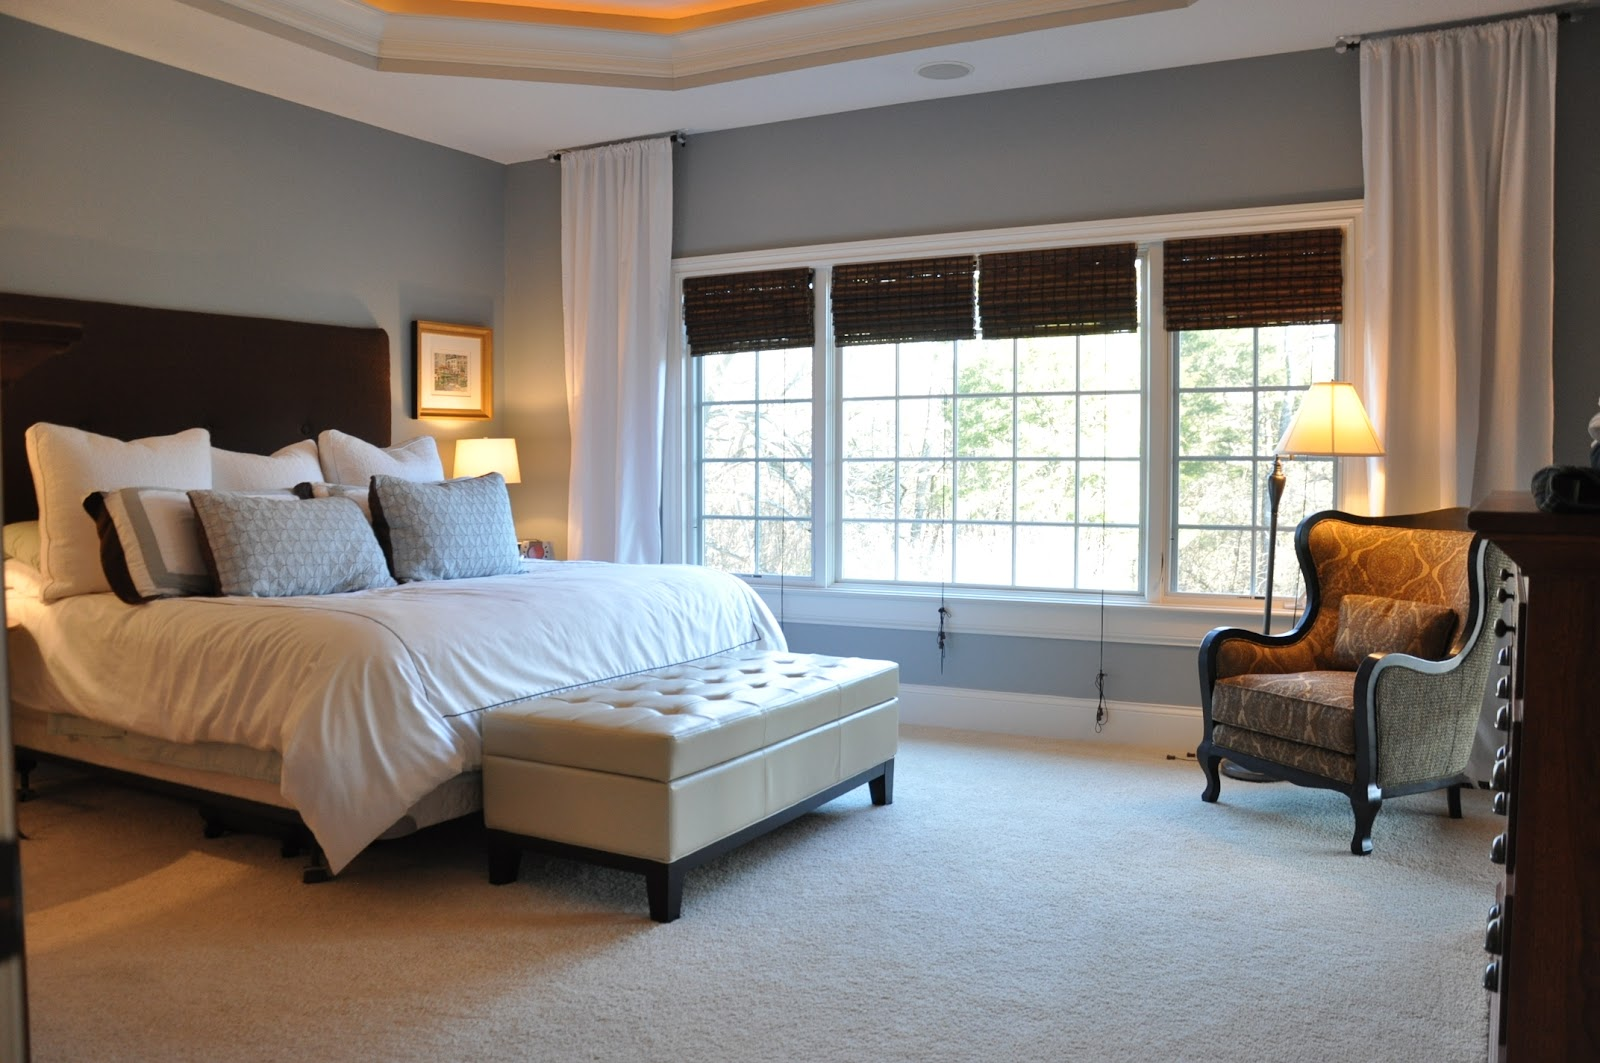 Pottery Barn Bedroom Colors Master Bedroom Paint Colors Sherwin Williams House Decor